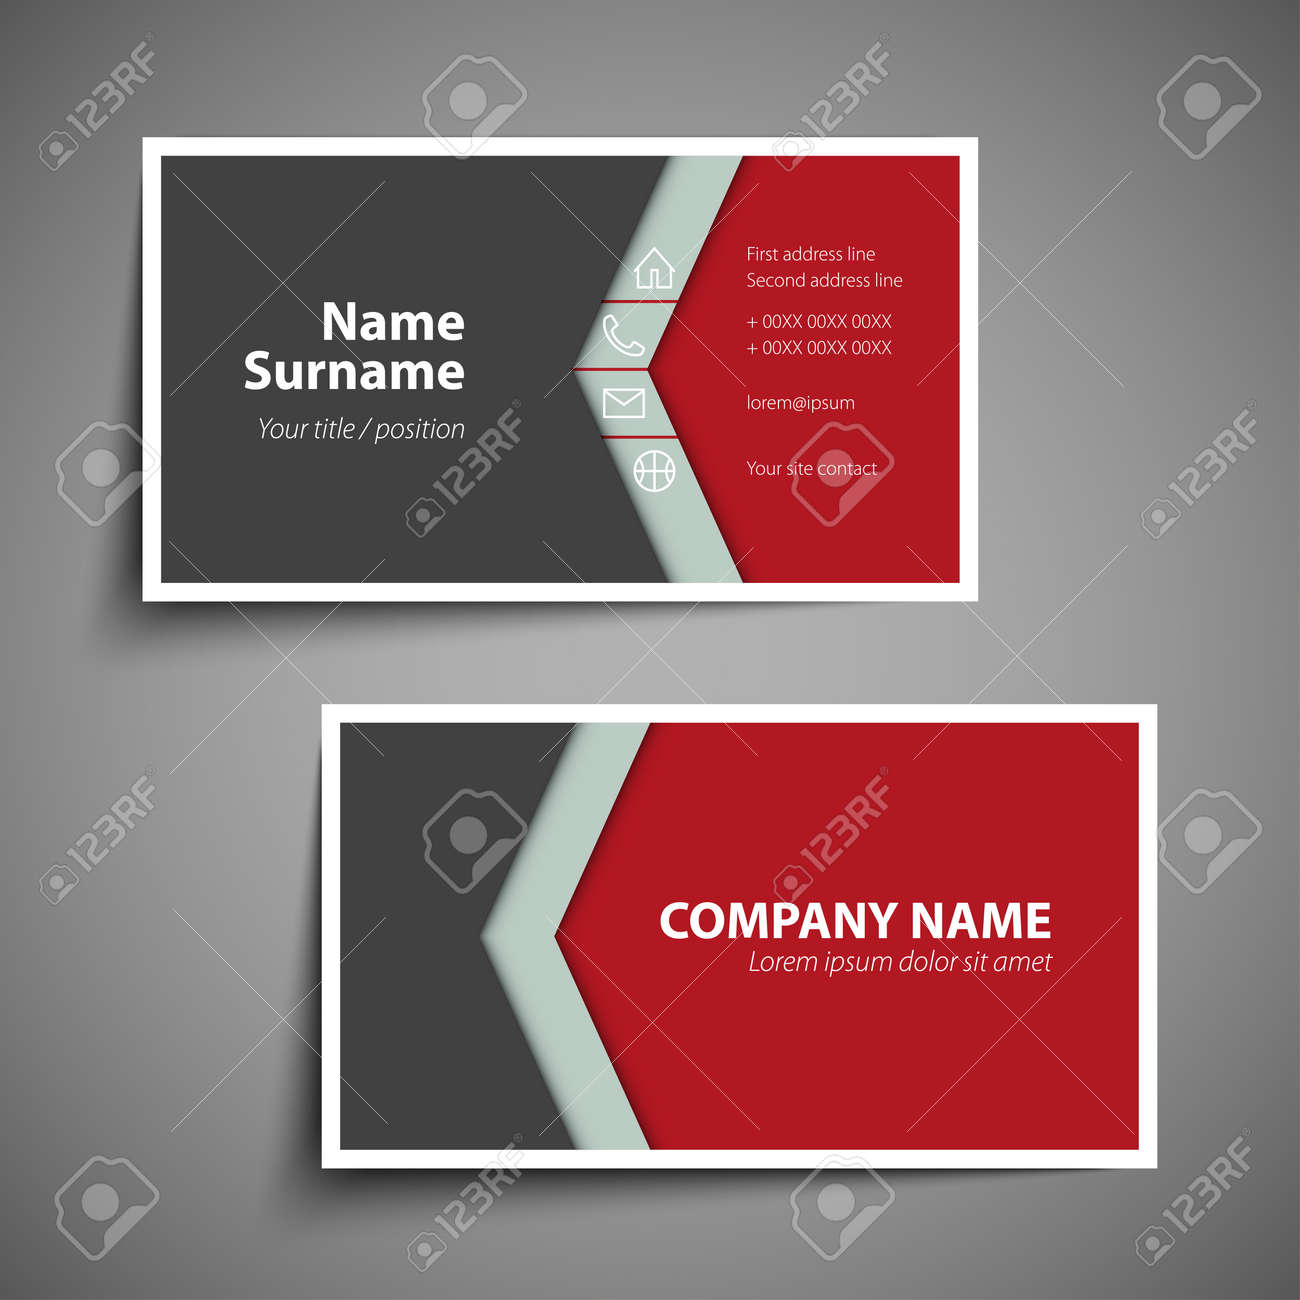 Modern simple business card template design royalty free cliparts modern simple business card template design stock vector 89417894 reheart Gallery